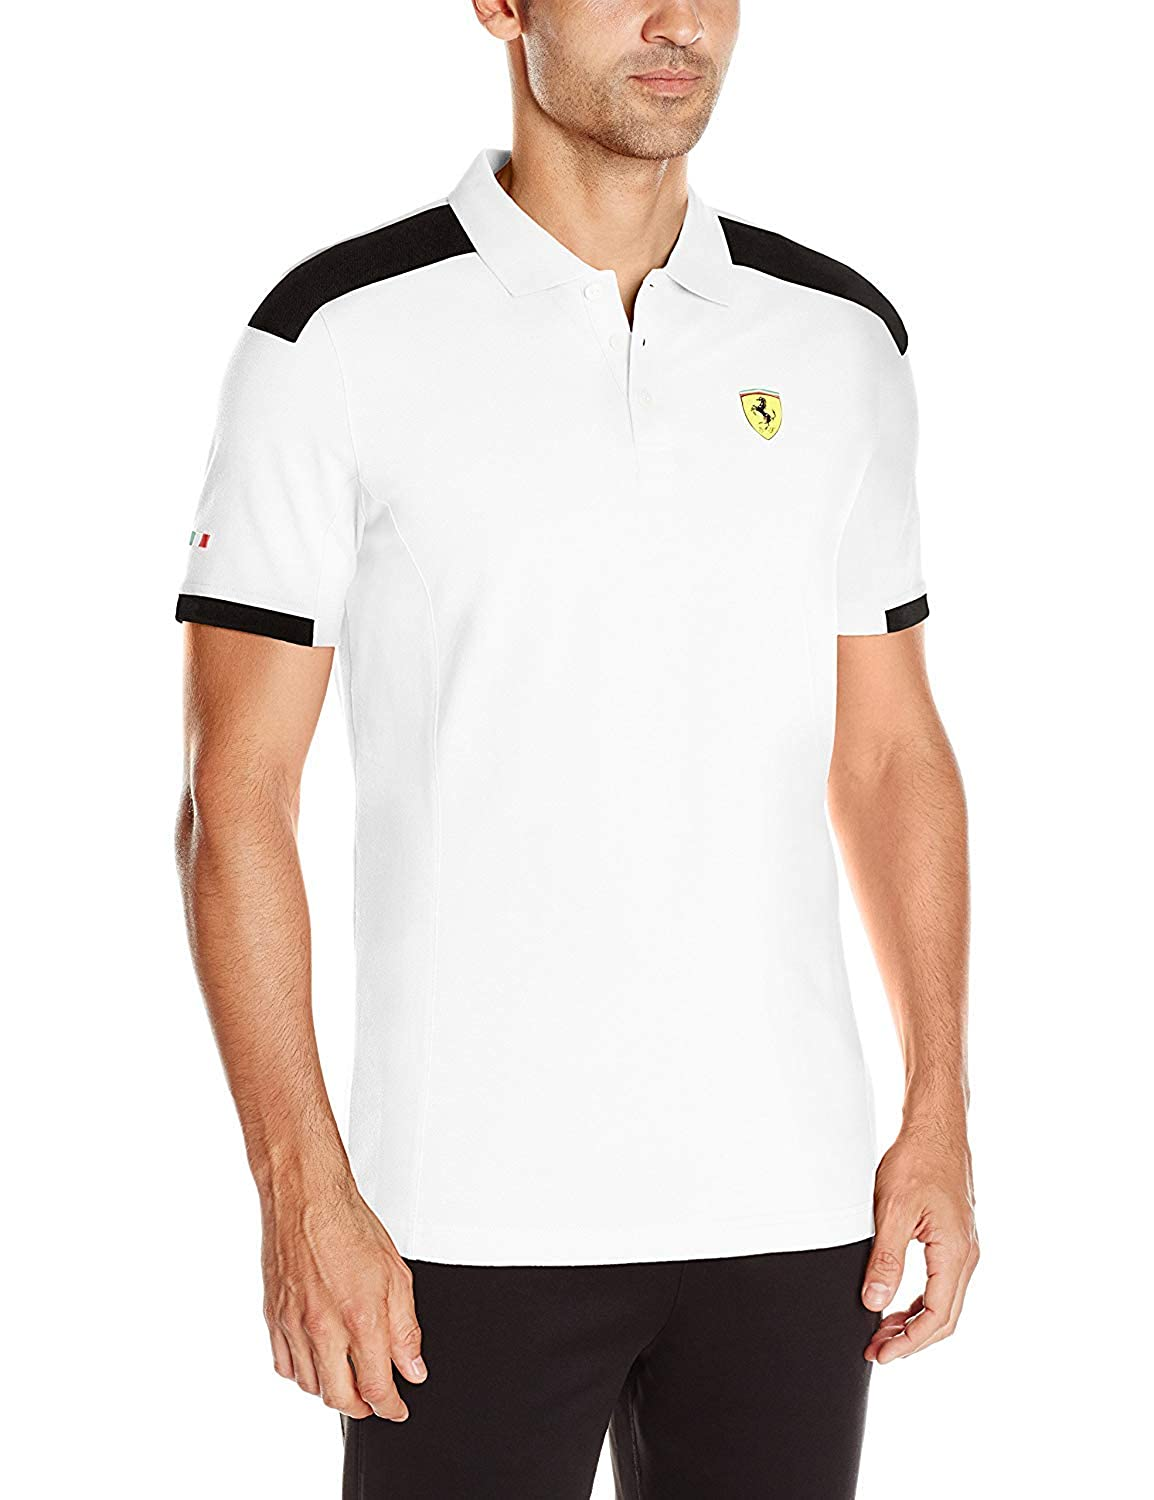 PUMA Mens Scuderia Ferrari Polo, White, Small: Amazon.es: Ropa y ...